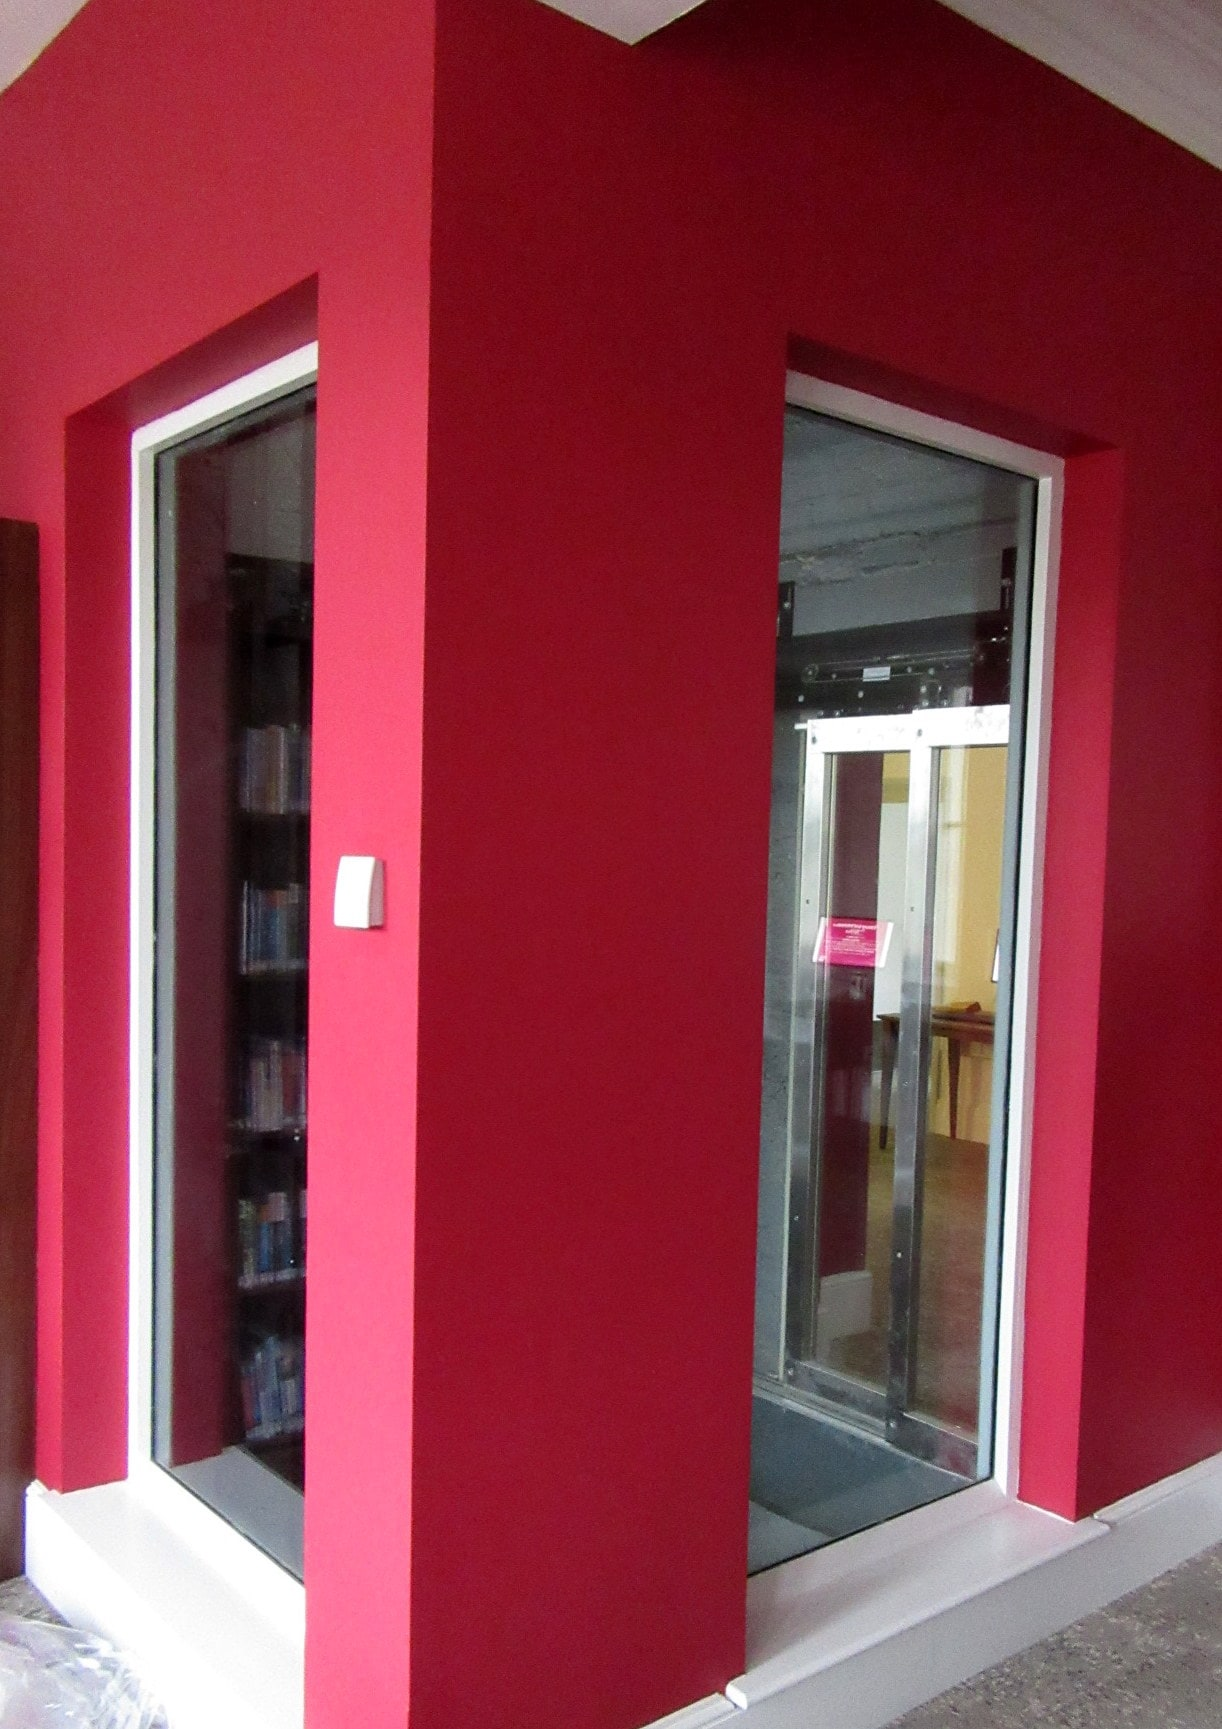 hastings-library-bespoke-fire-rated-glass-panels